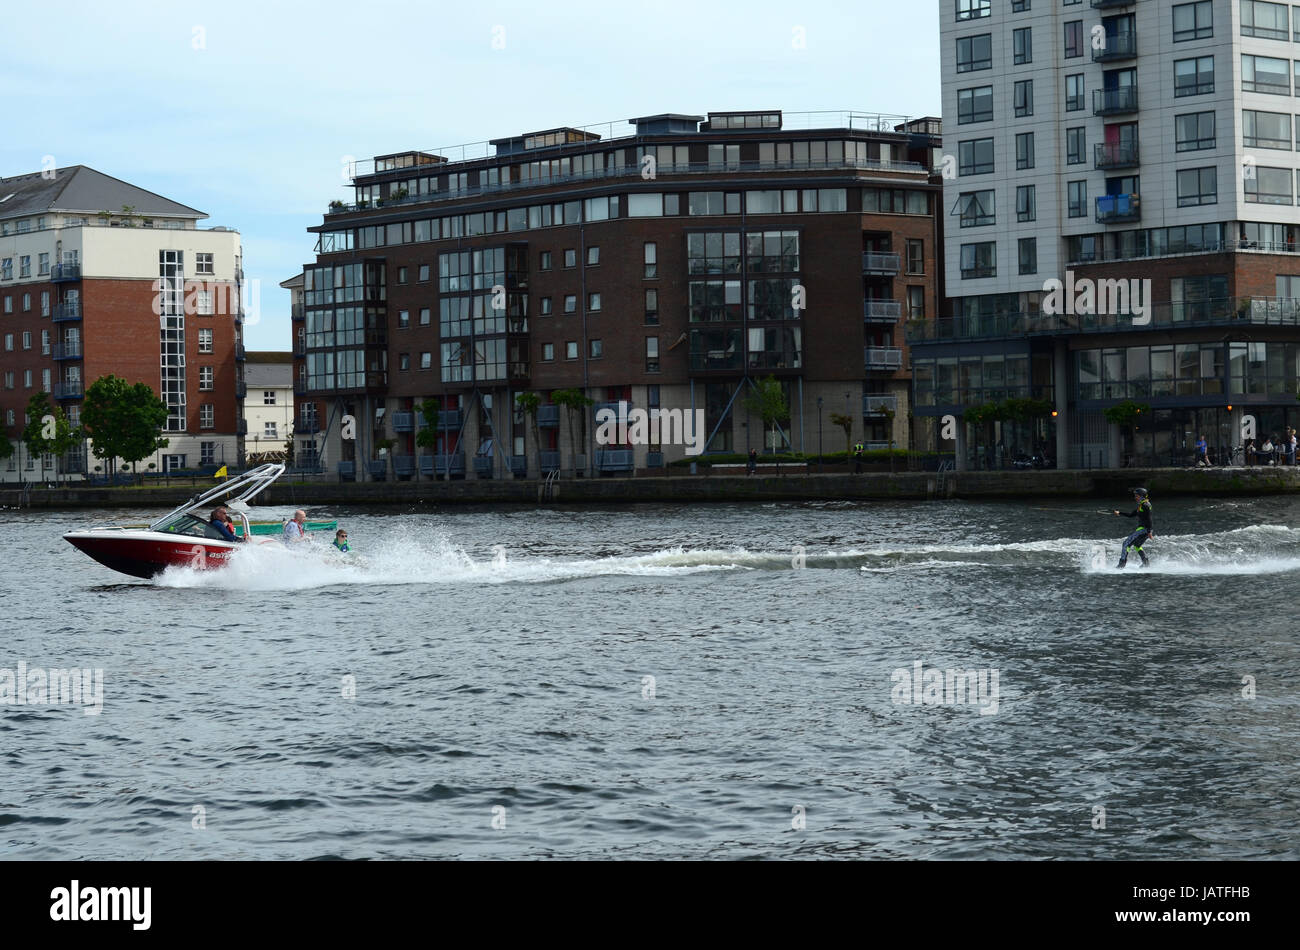 Guy doing Wakeboard by the Dublin Docklands - Stock Image